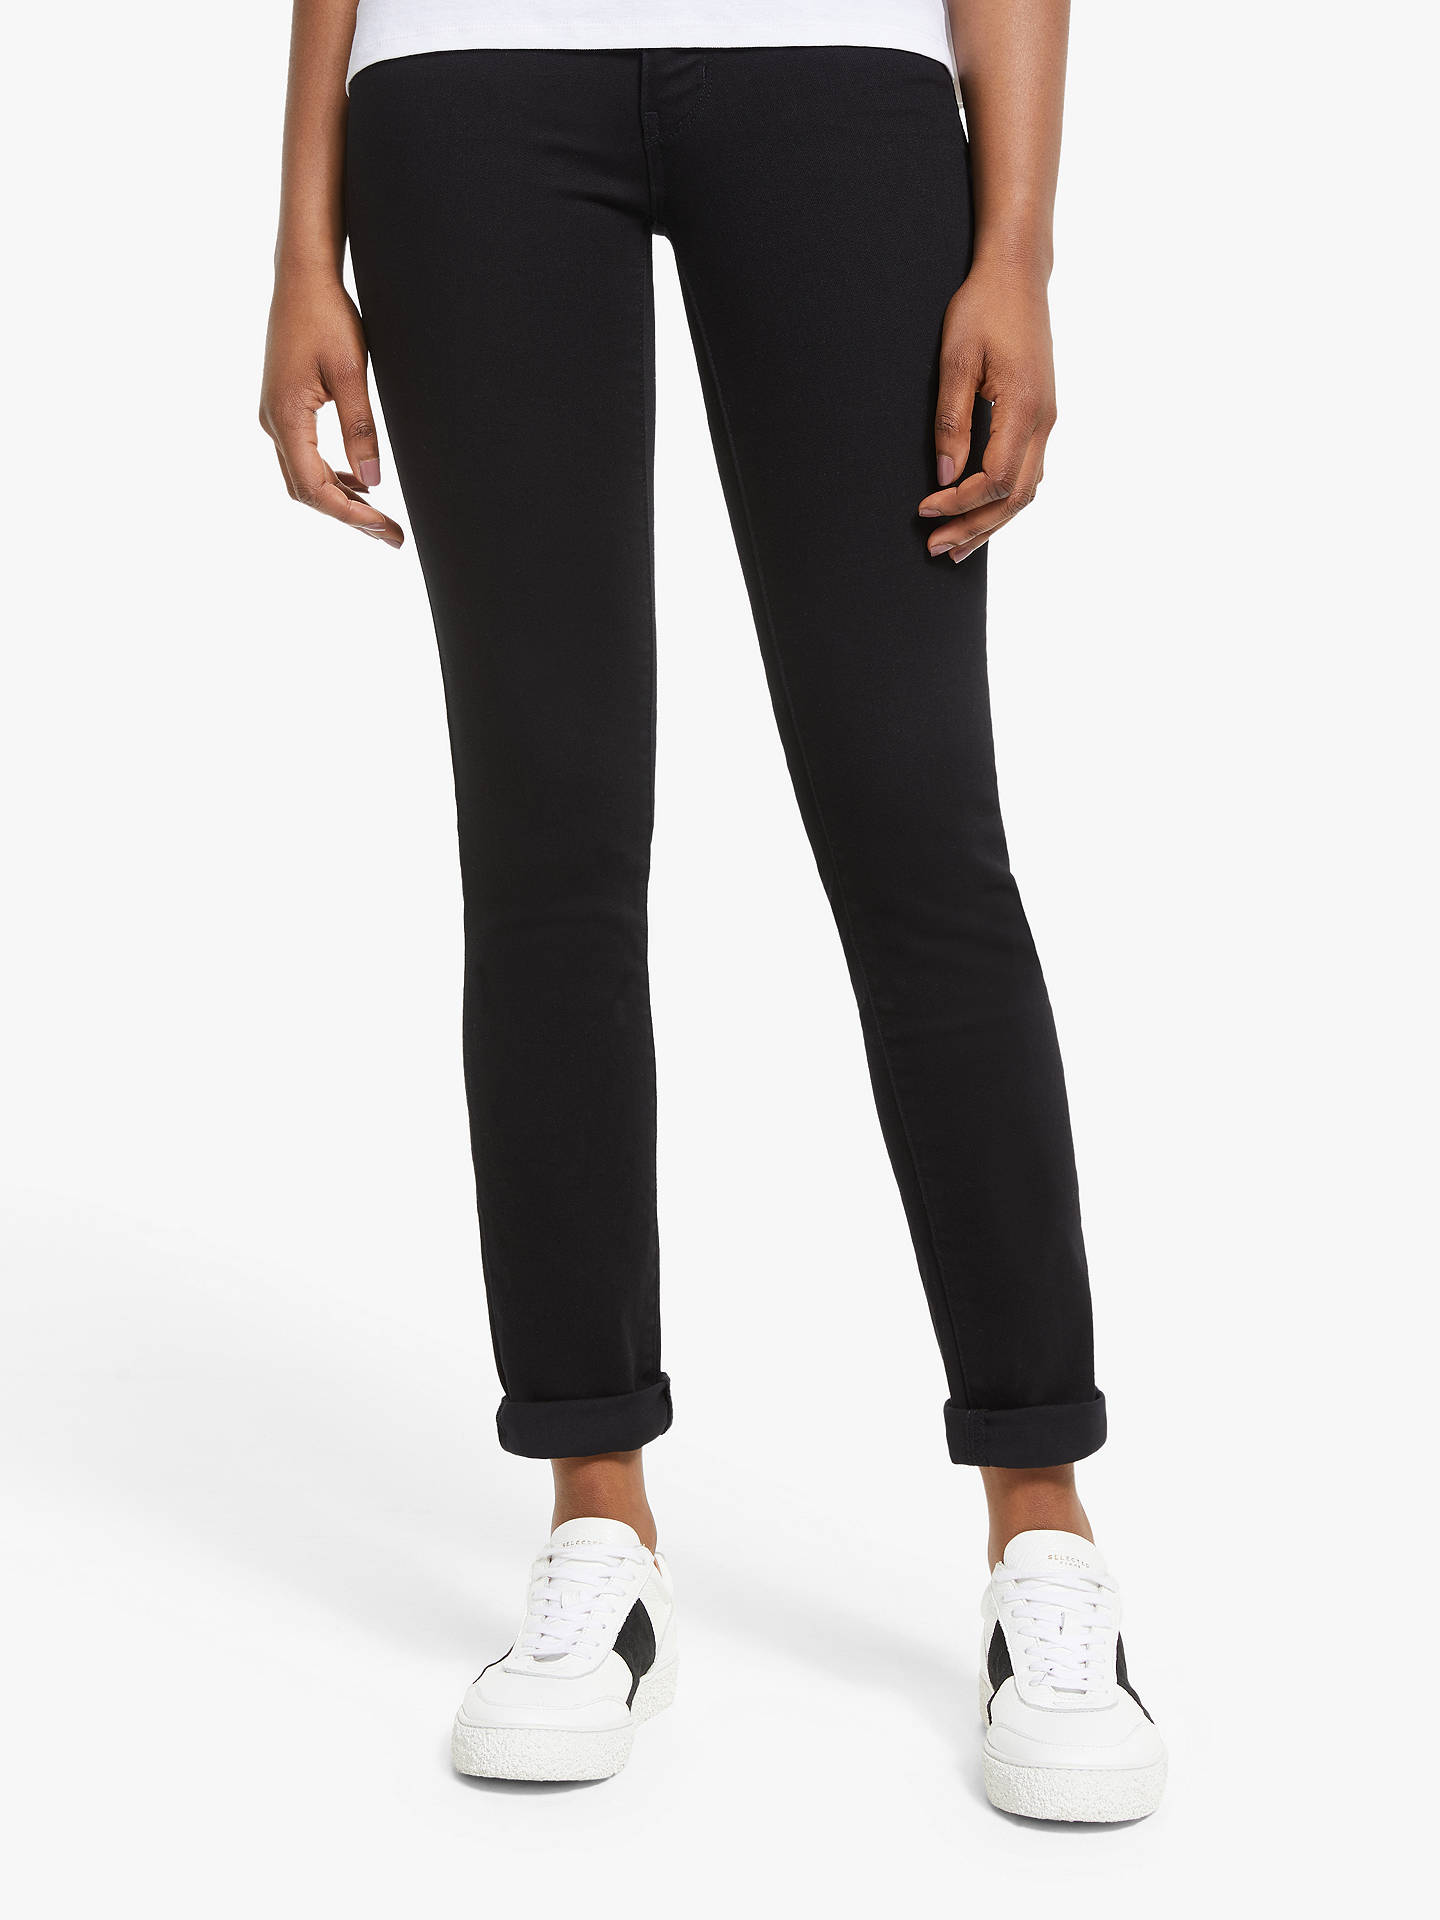 ca76315a1275 Buy Levi's 712 Mid Rise Slim Jeans, Black Sheep, W27/L30 Online at ...